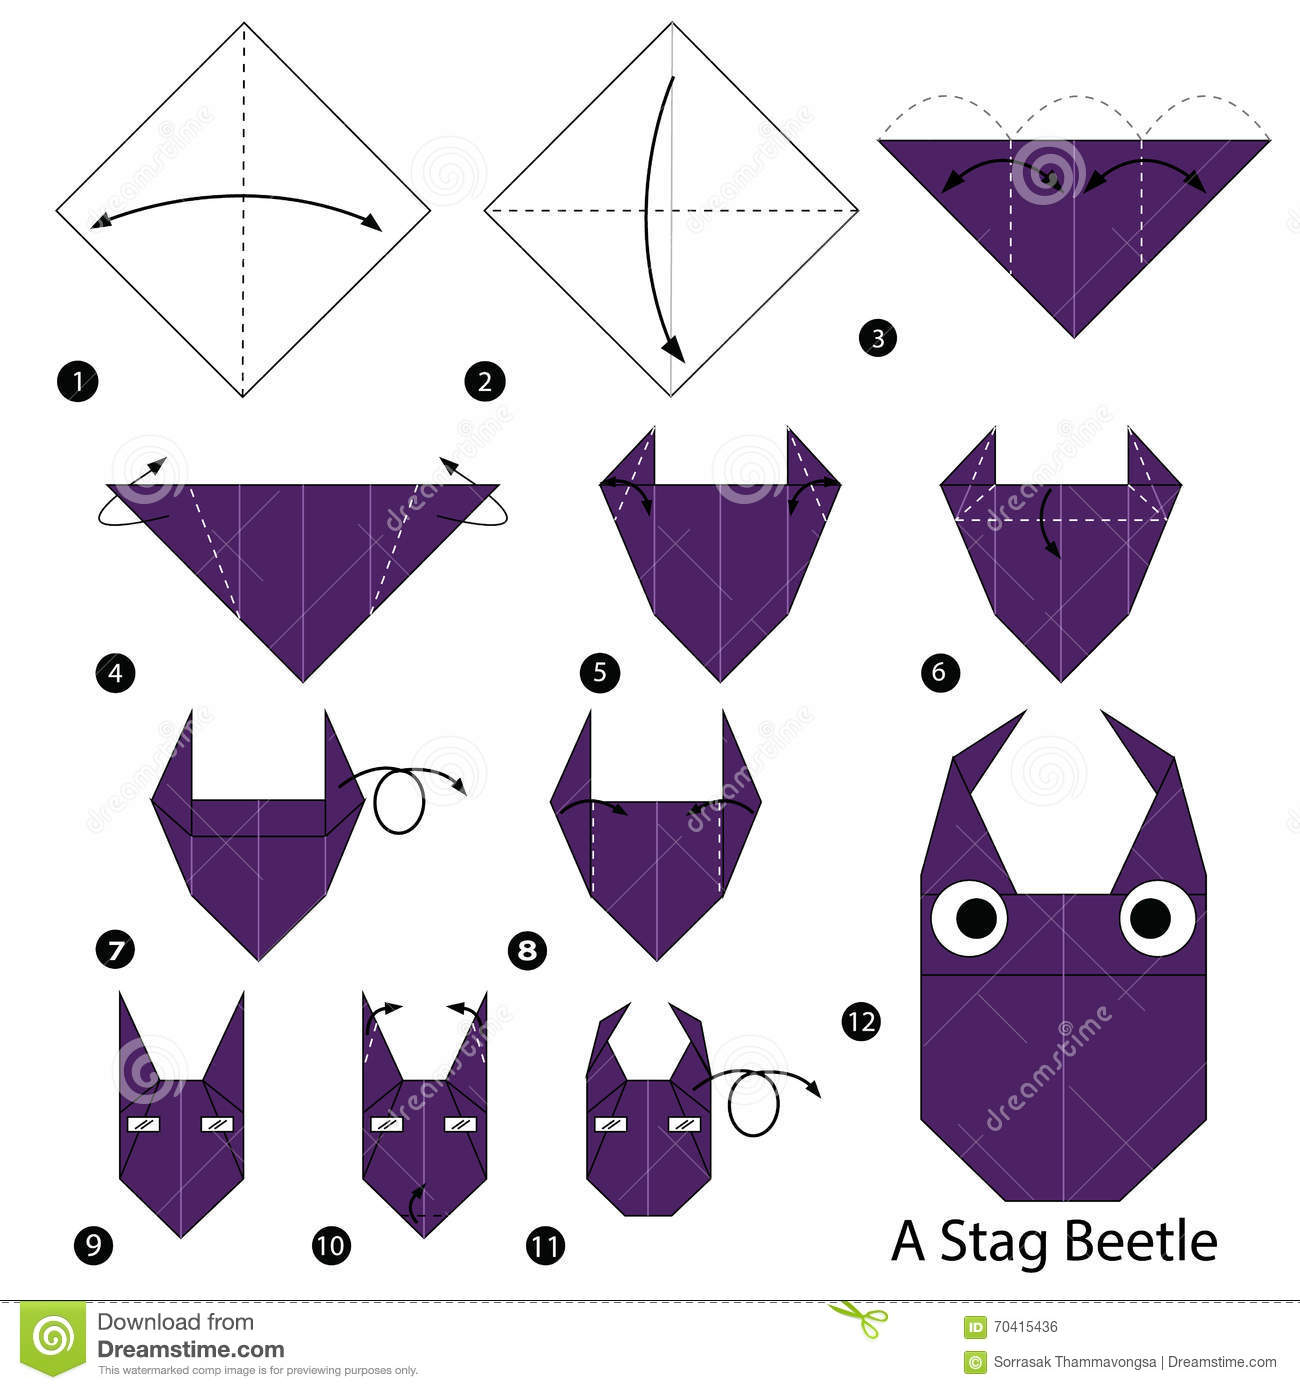 how to draw a stag beetle step by step